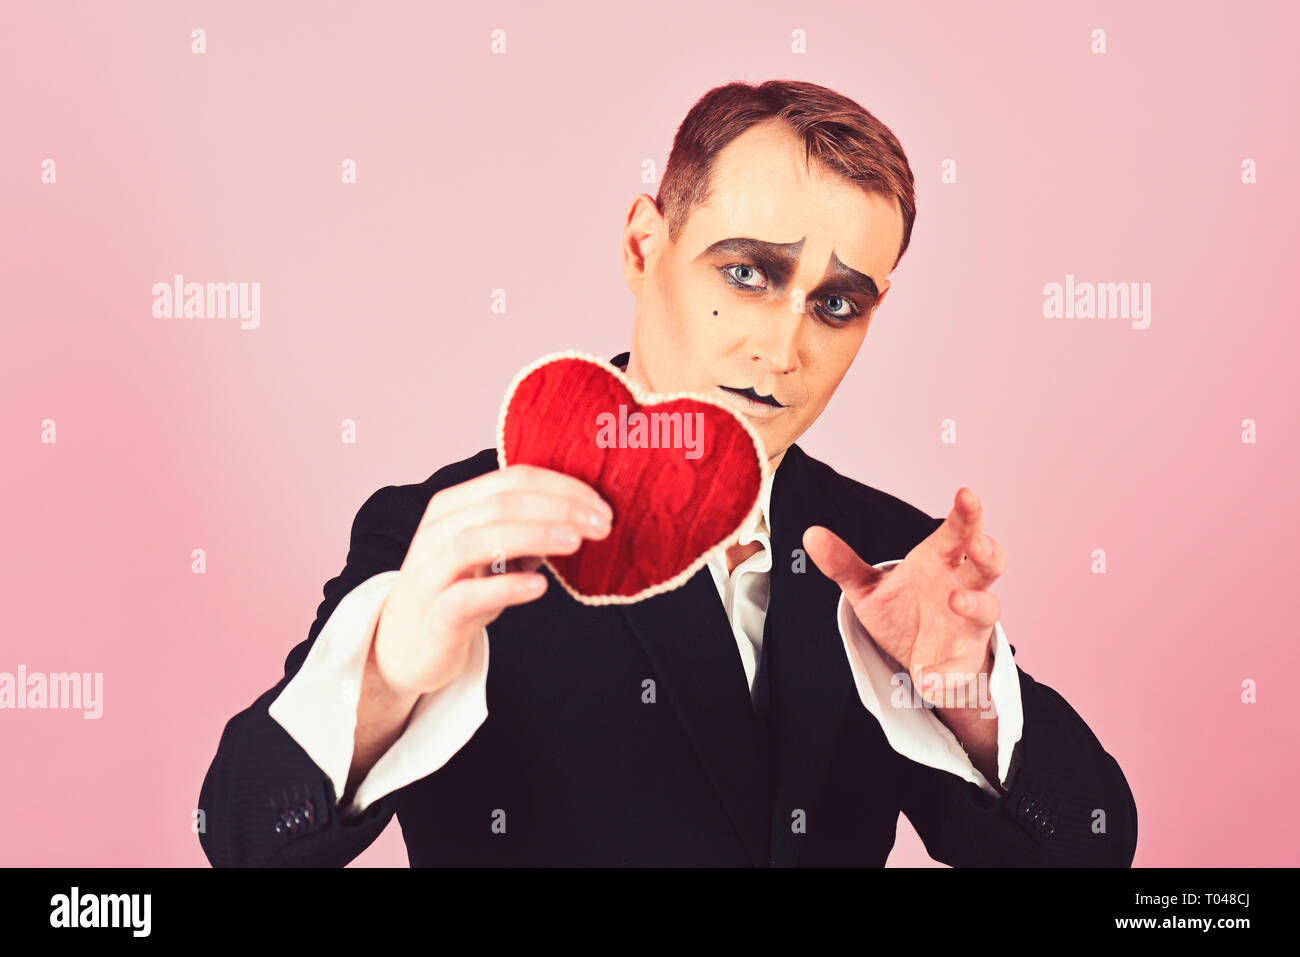 He is sensitive and very poetic. Mime man hold red heart for valentines day. Theatre actor pantomime falling in love. Mime actor with love symbol - Stock Image